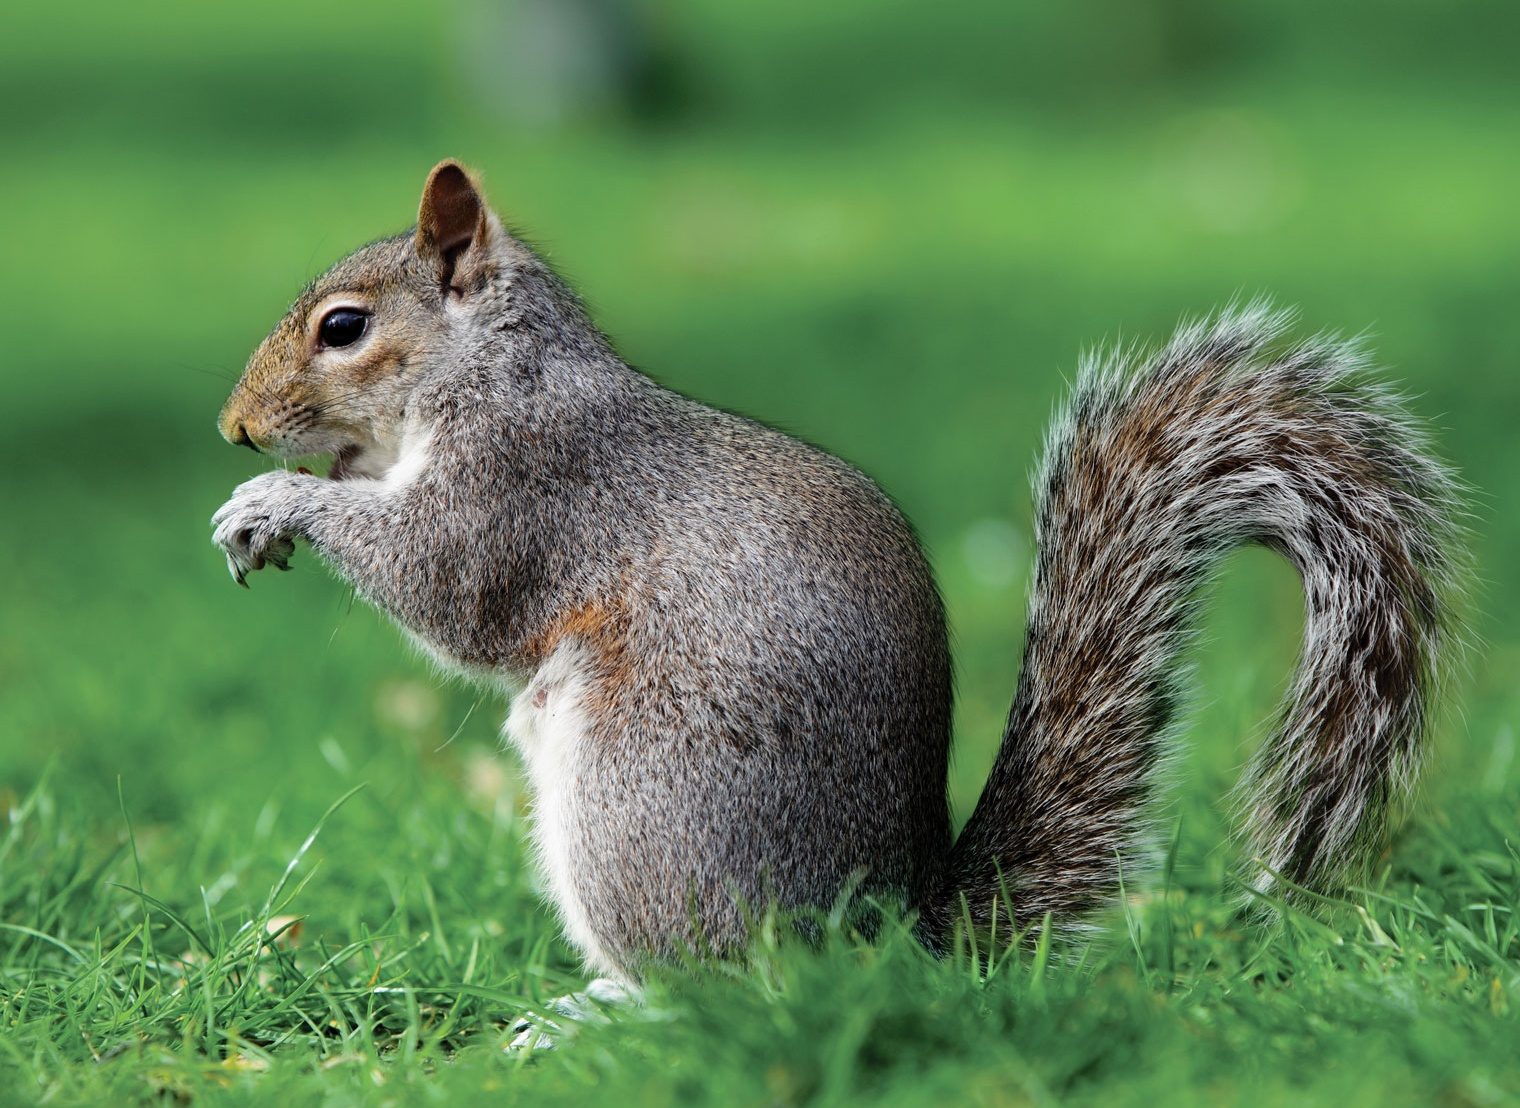 Eastern gray squirrel -- Britannica Online Encyclopedia